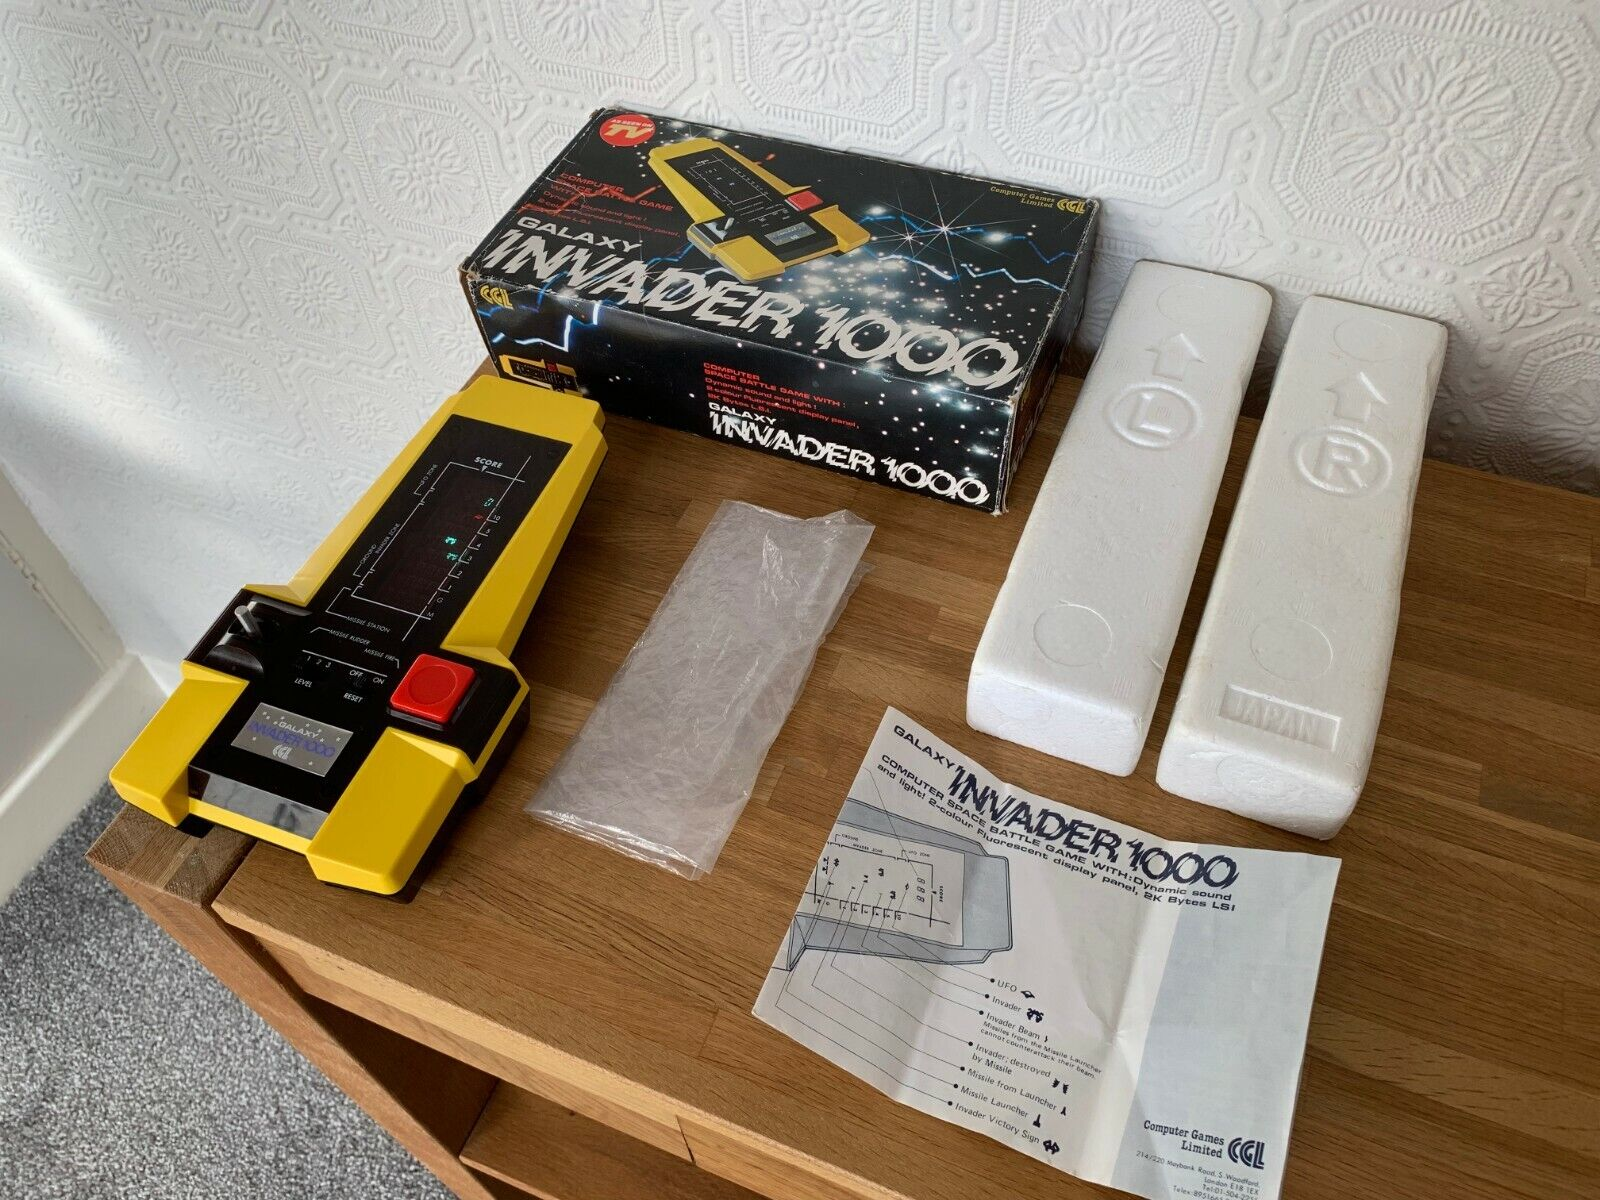 Superb CGL Galaxy Invader 1000 Vintage 1980 Handheld Electronic Game - Near Mint